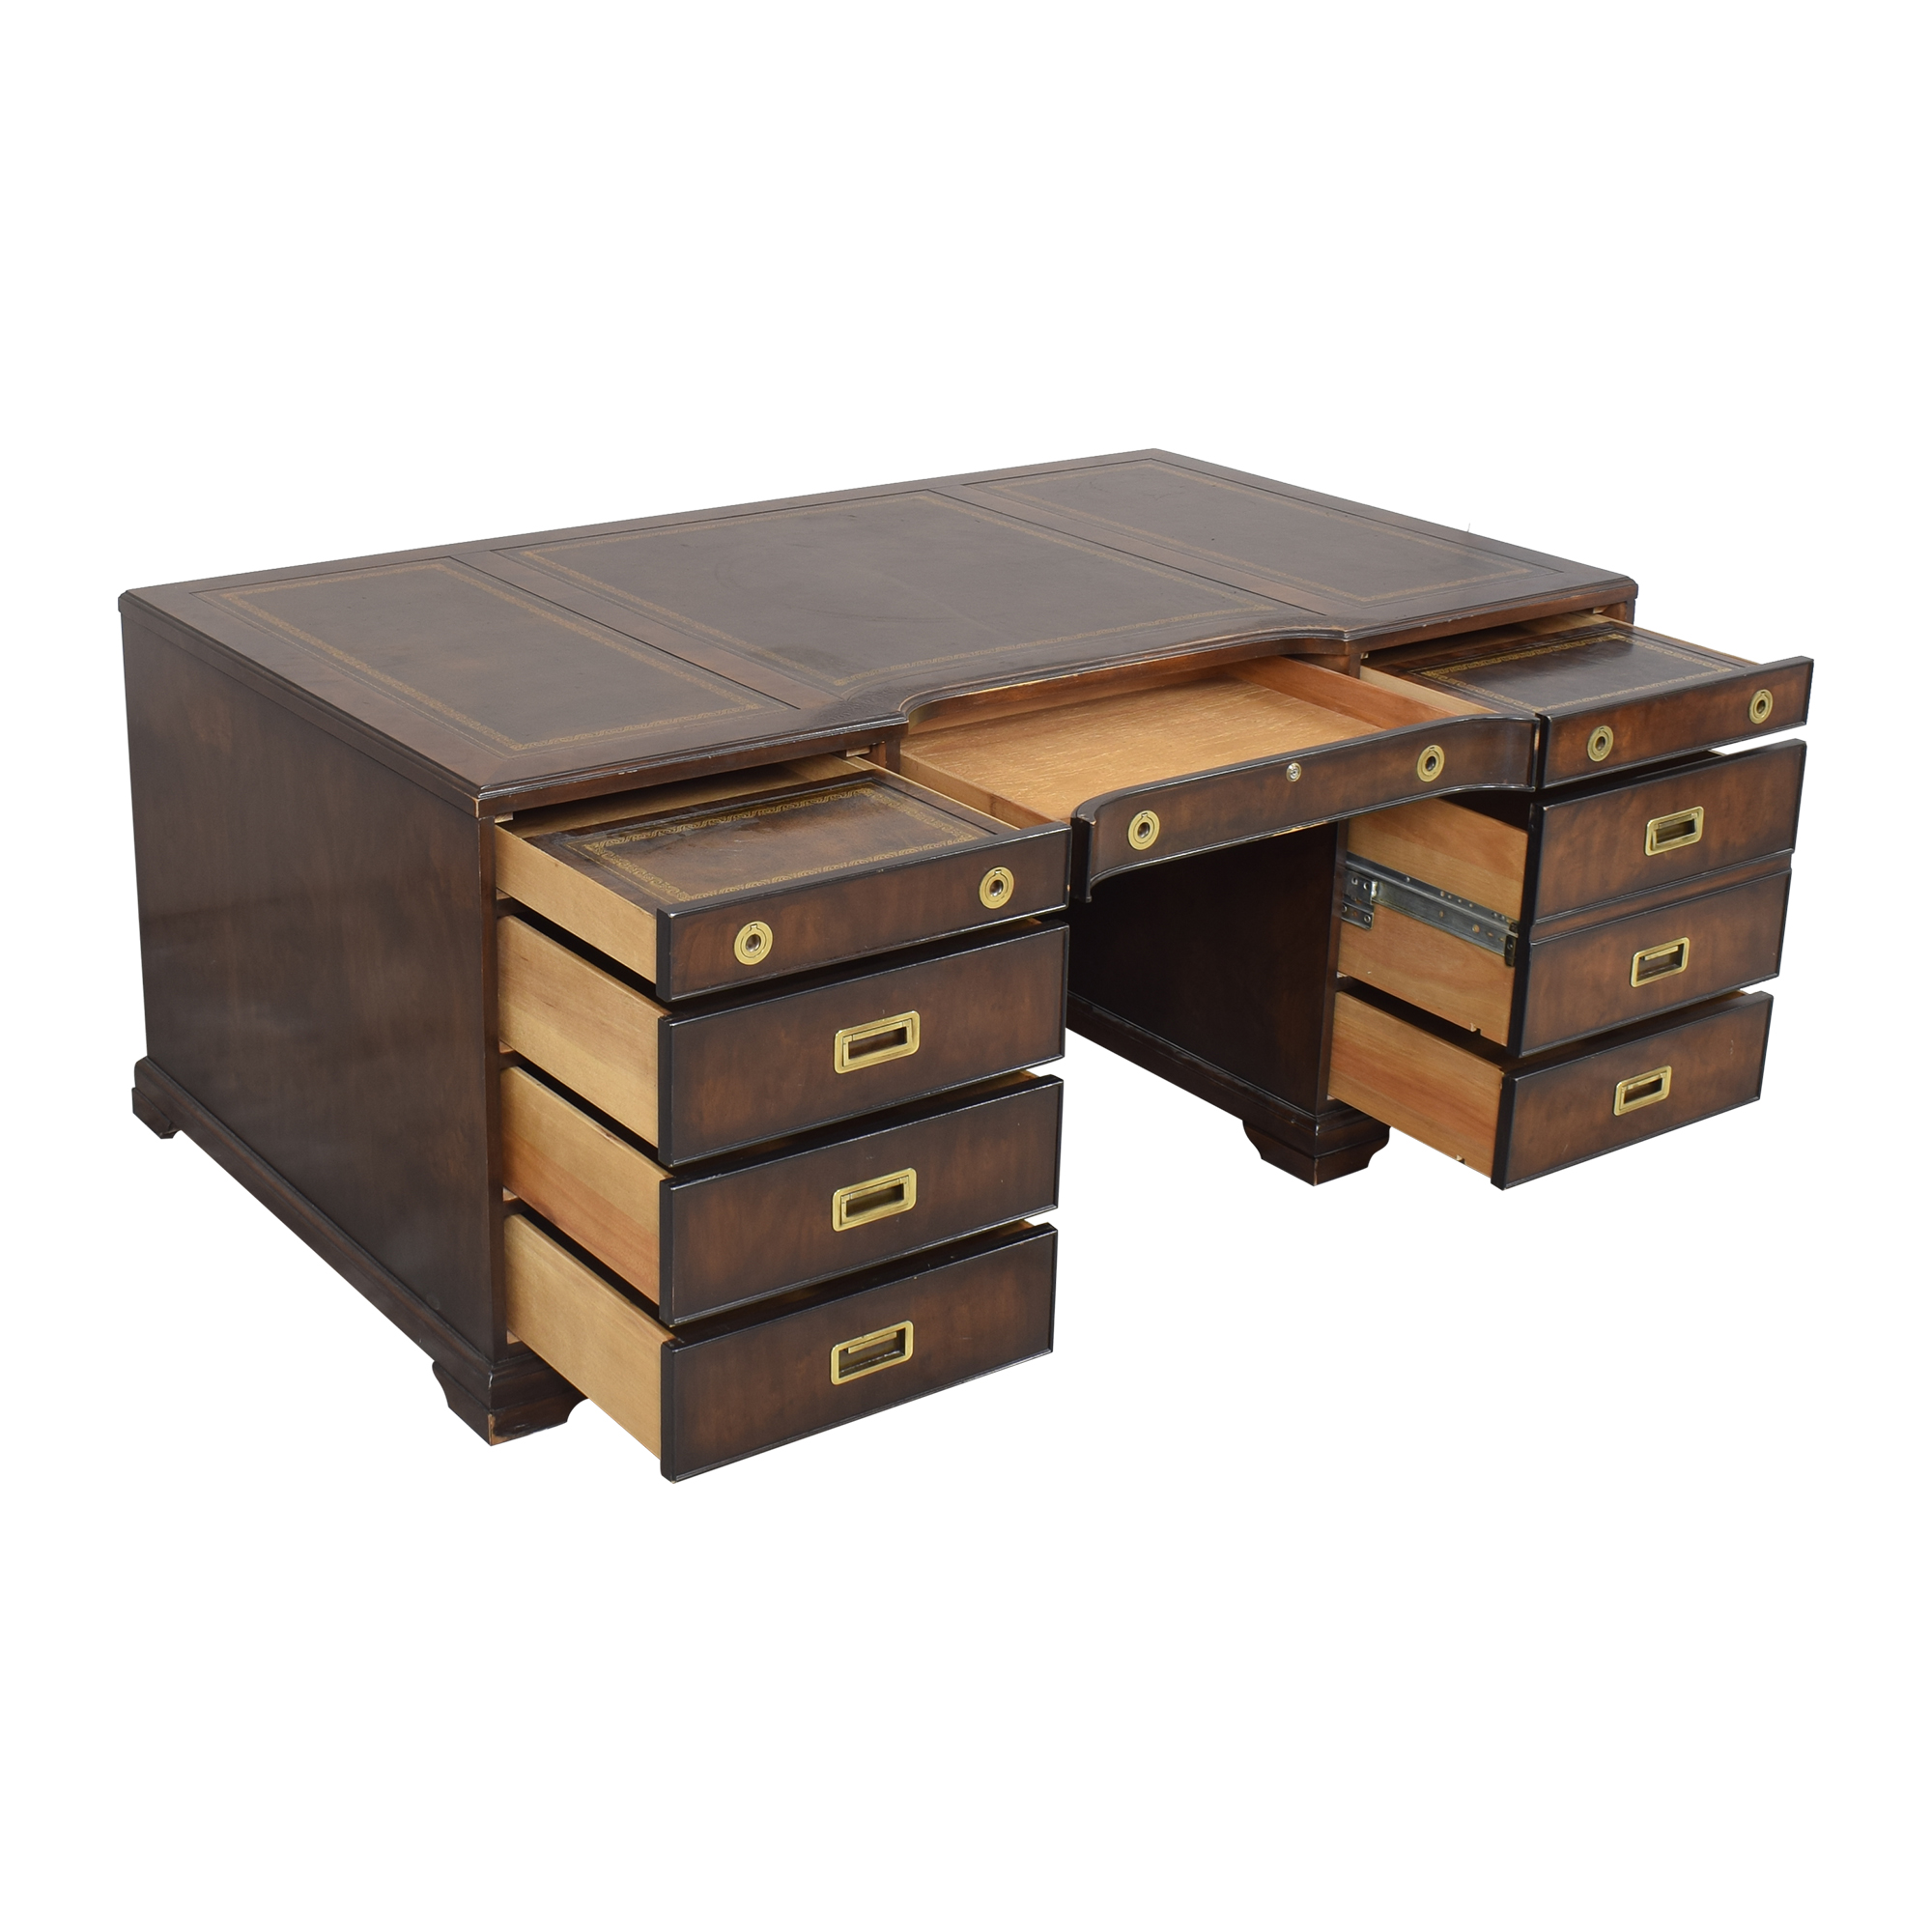 Executive Desk with Drawers and Cabinets nyc